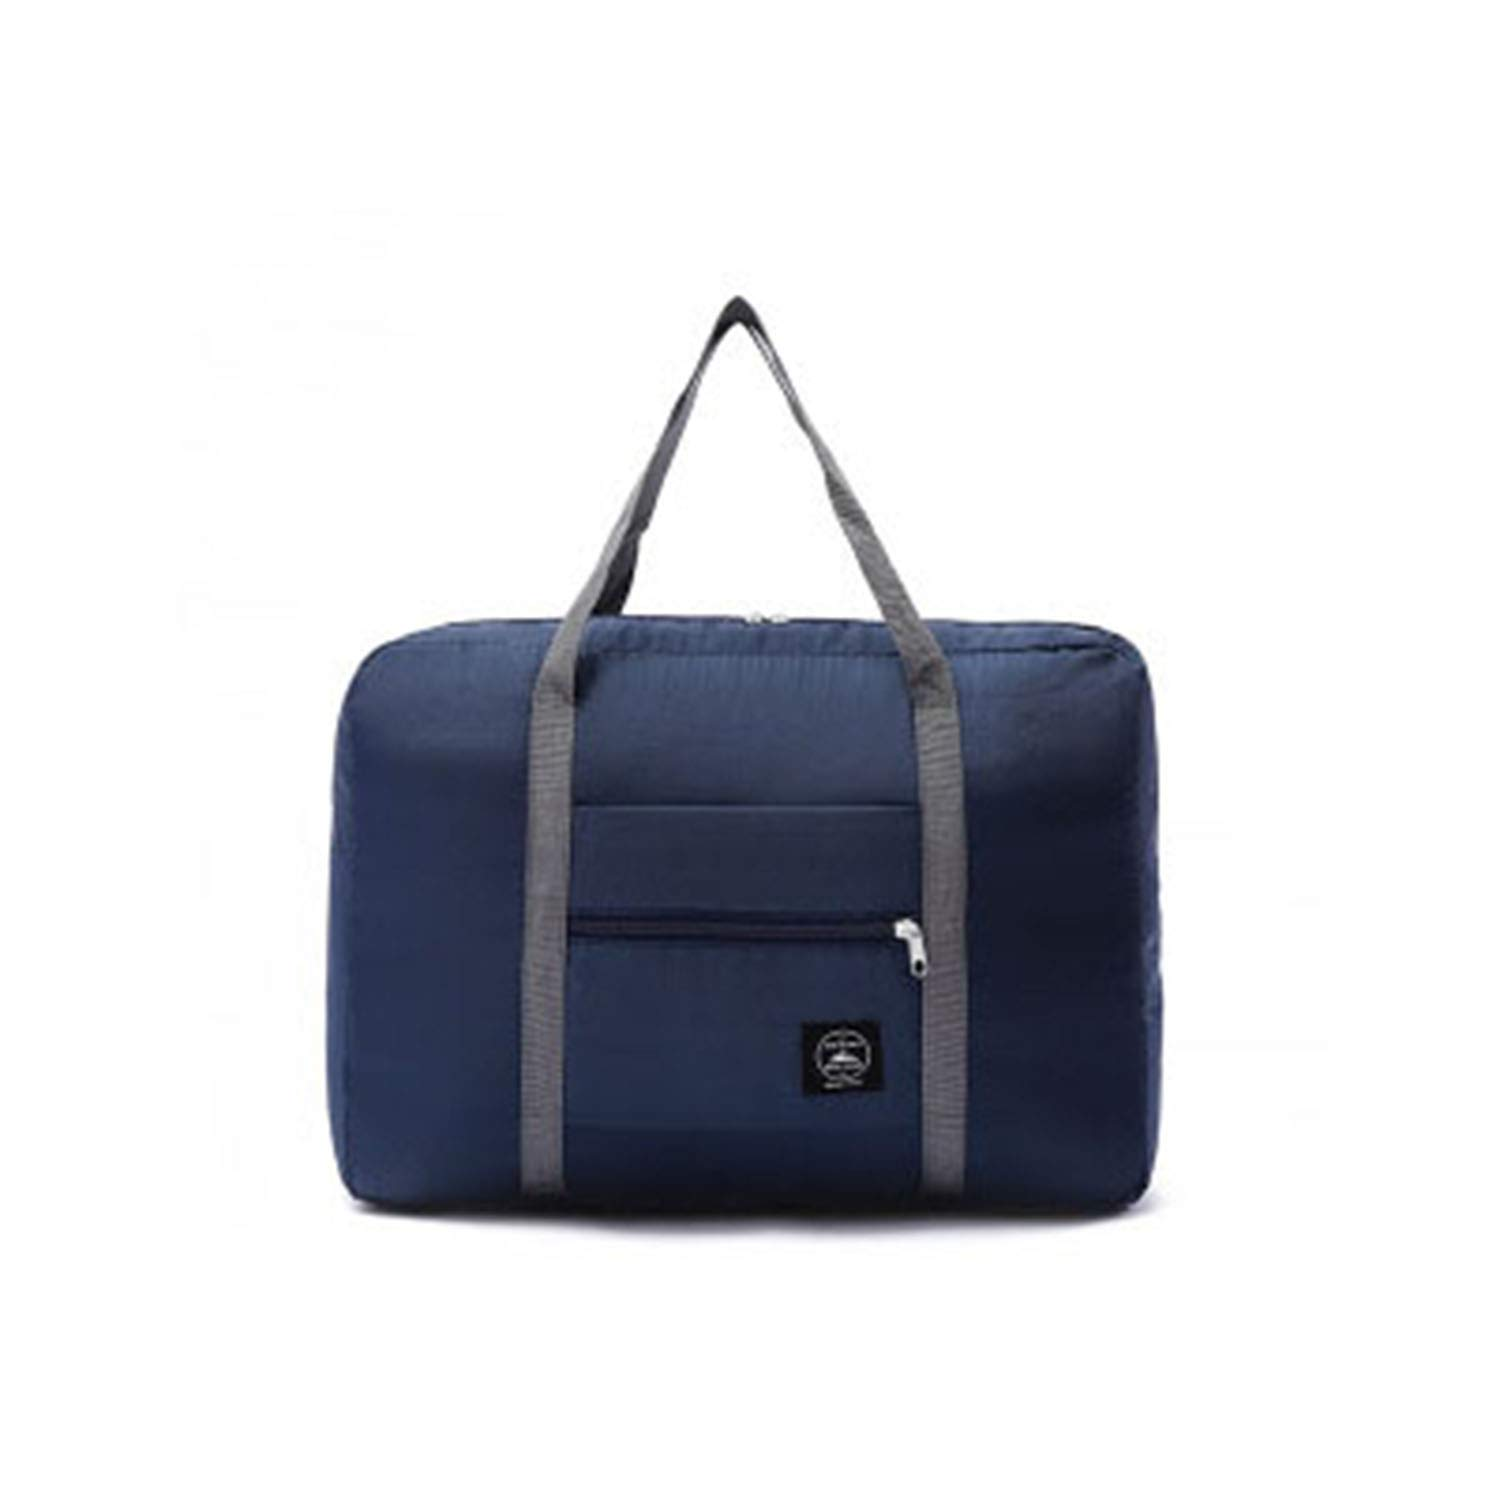 Foldable Carry On Travel Tote School Supplies Bag Waterproof Large Capacity Rolling Duffle Back to School Bags